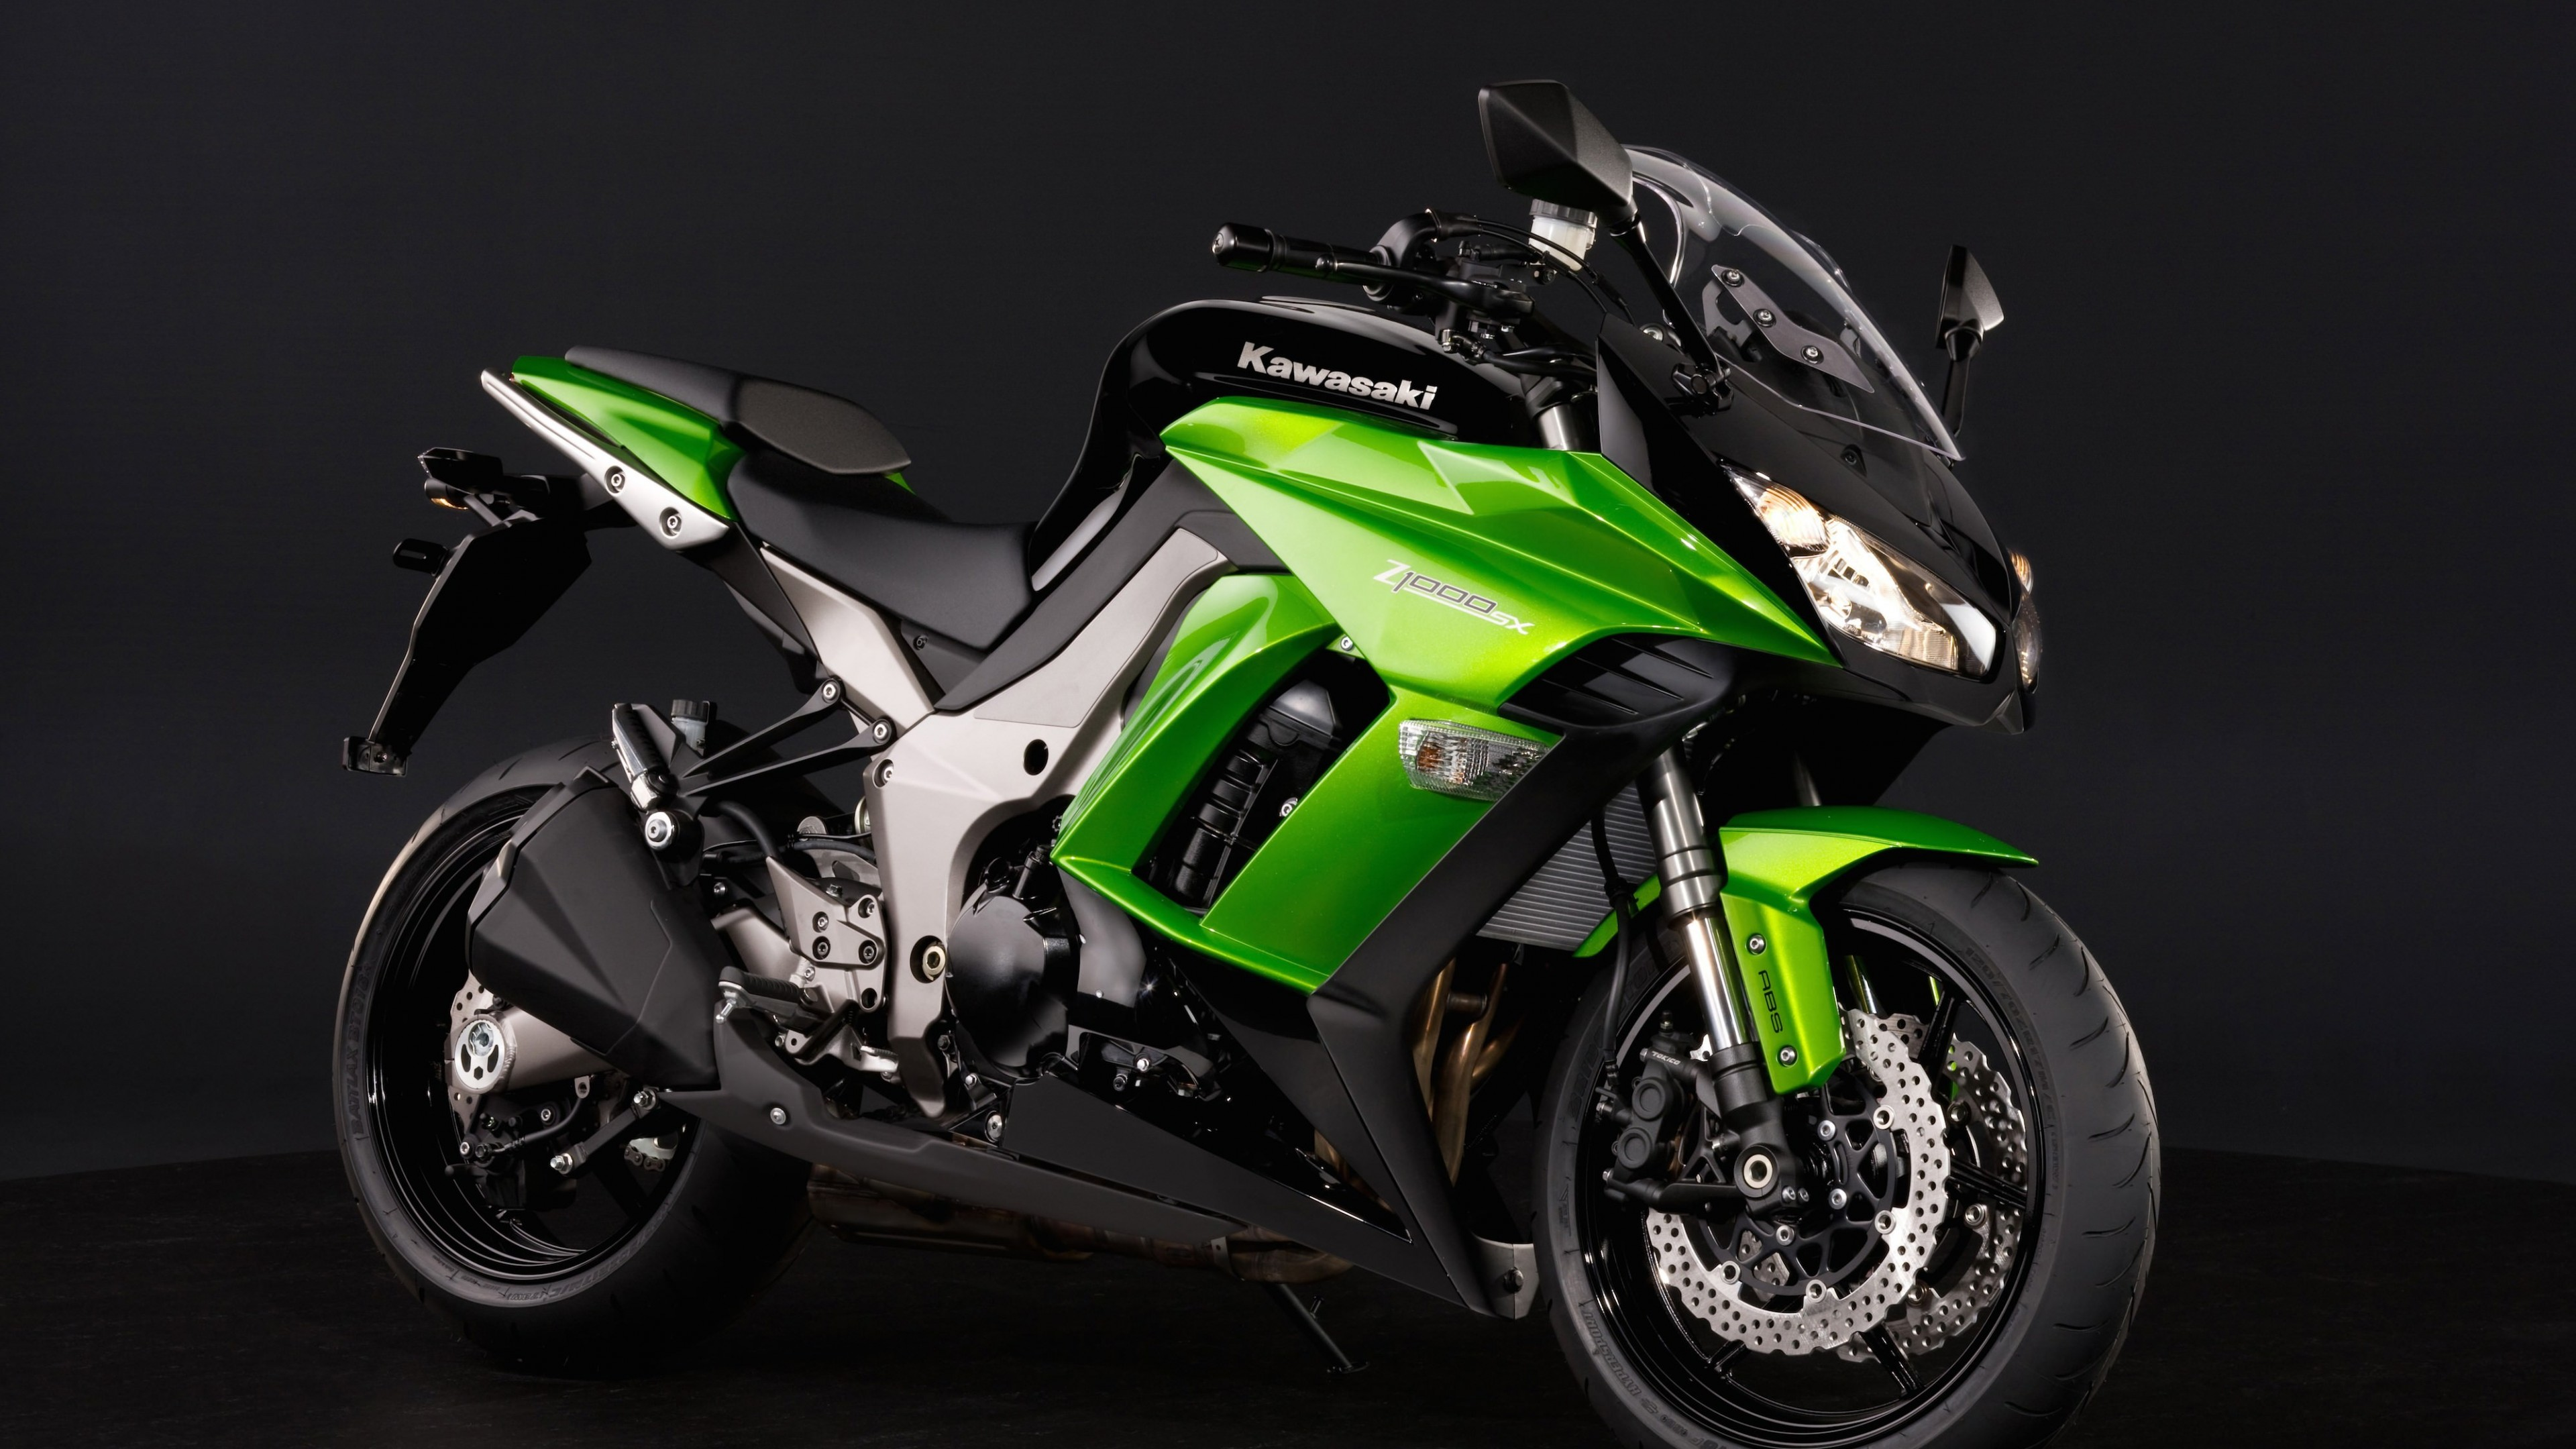 Kawasaki Wallpapers, Photos And Desktop Backgrounds Up To